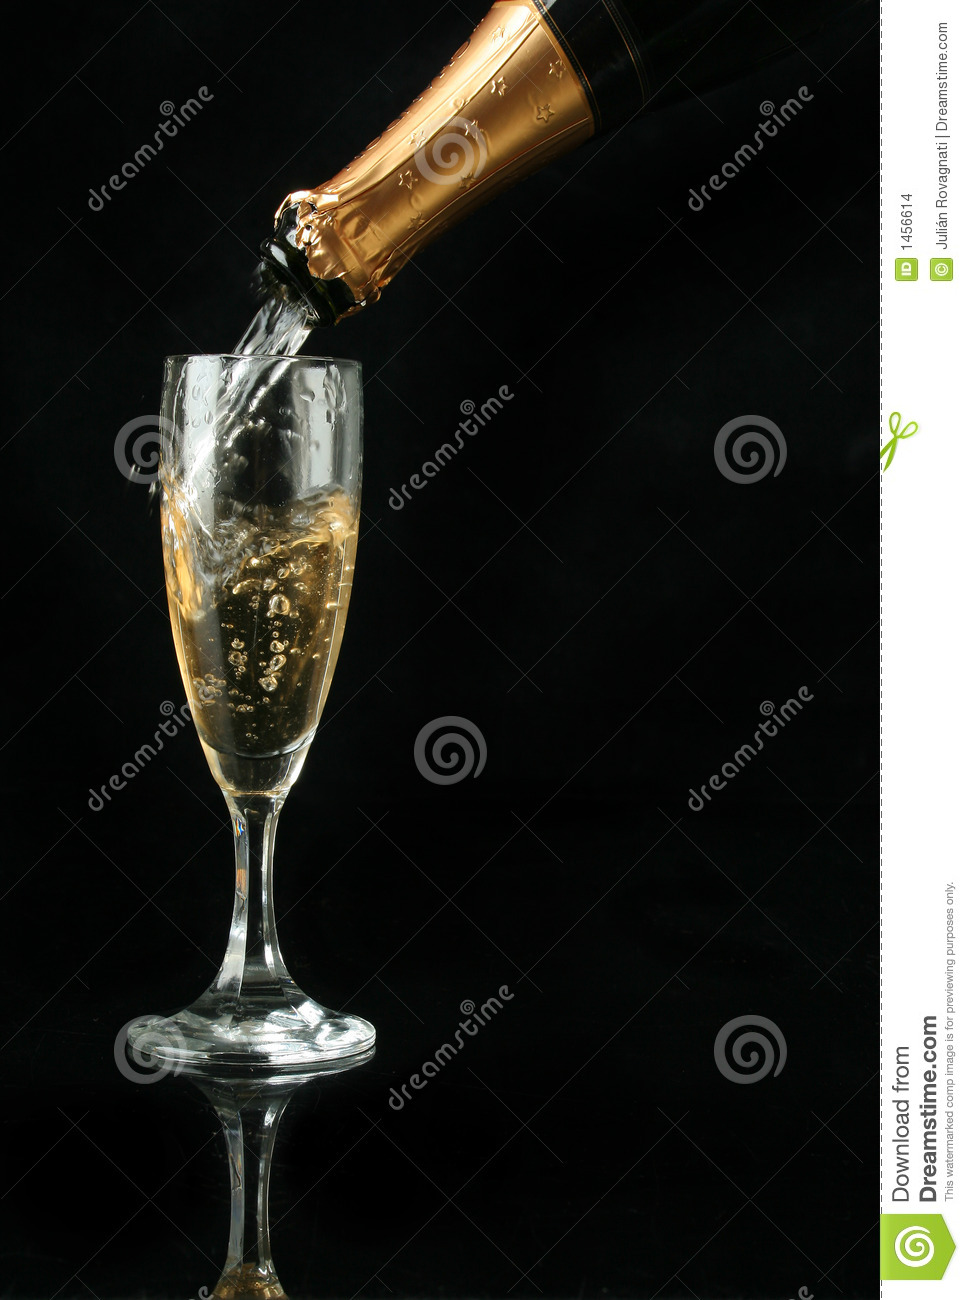 pouring a champagne flute stock images image 1456614. Black Bedroom Furniture Sets. Home Design Ideas